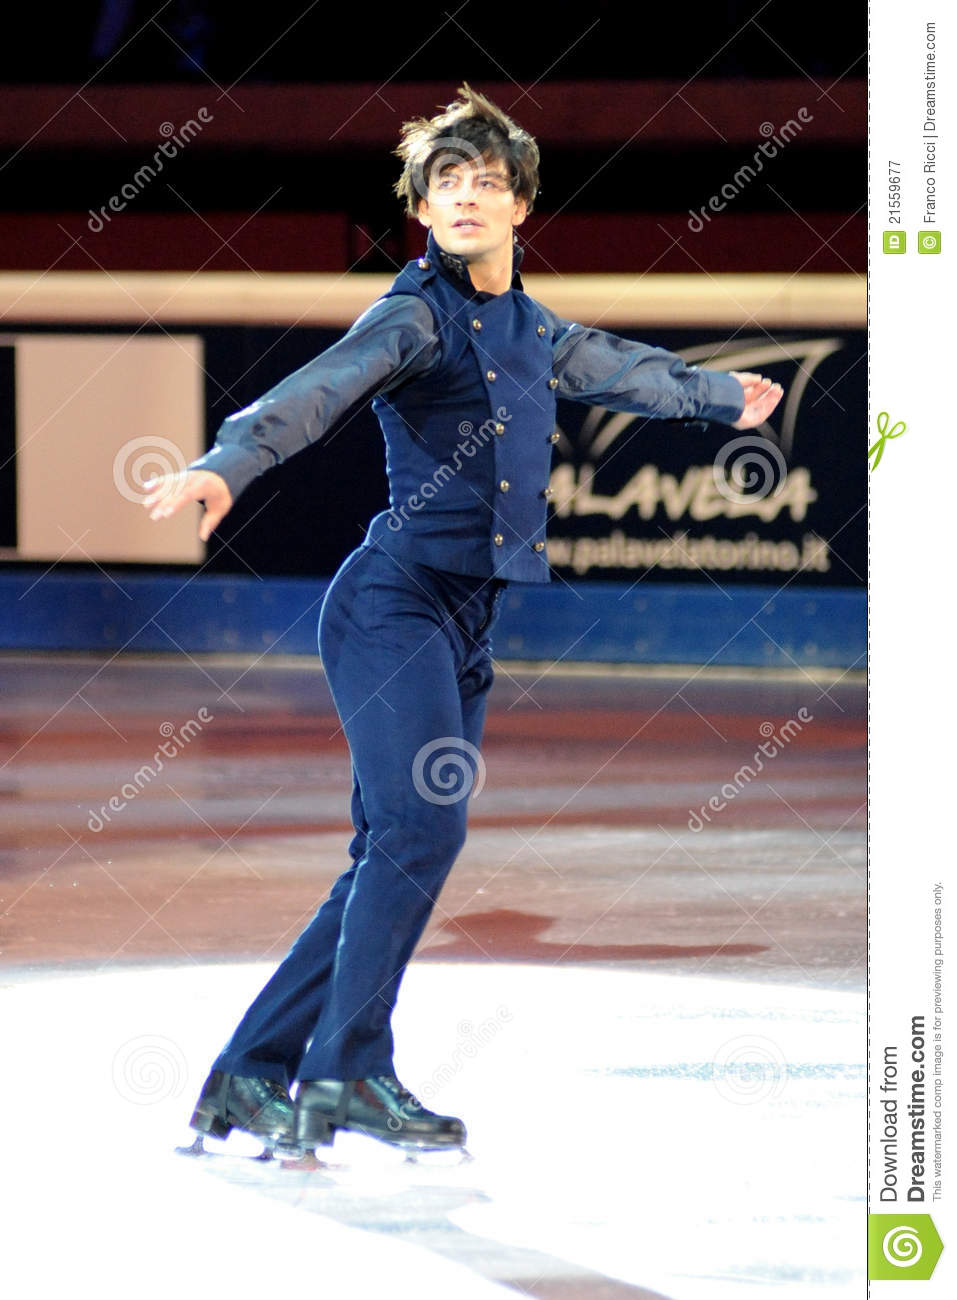 Ice Skater Stephane Lambiel Figure Skating 2006 World Champions And Olympic Vice Exhibiting At Golden Skate Award In Turin Italy